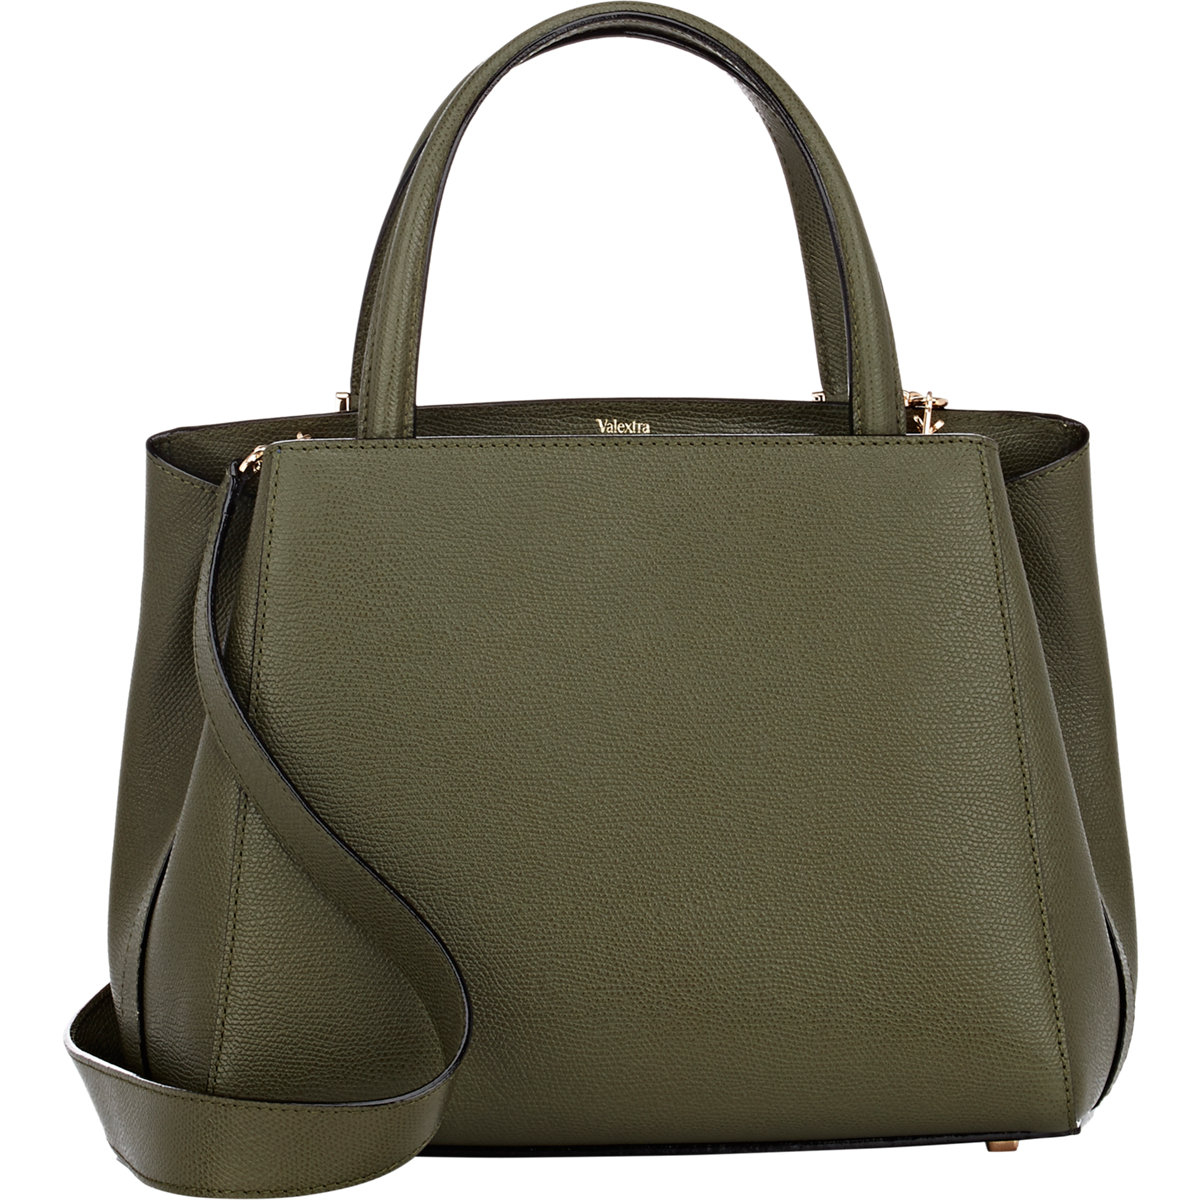 Valextra Triennale Small Satchel in Green